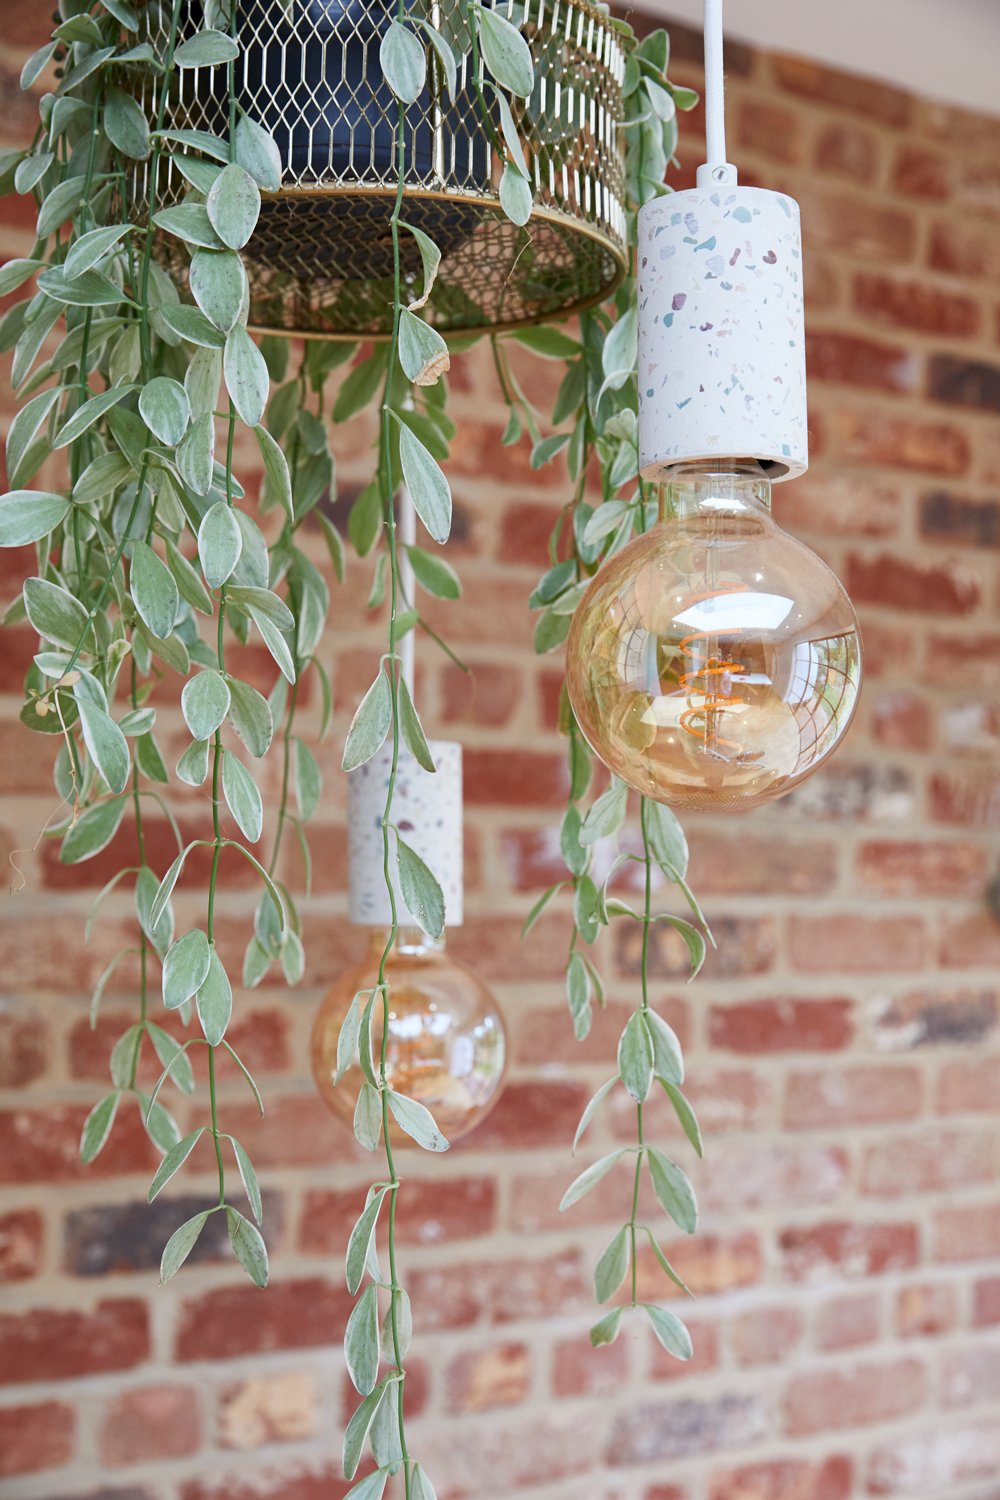 Hanging planter and bulbs with exposed brick backdrop